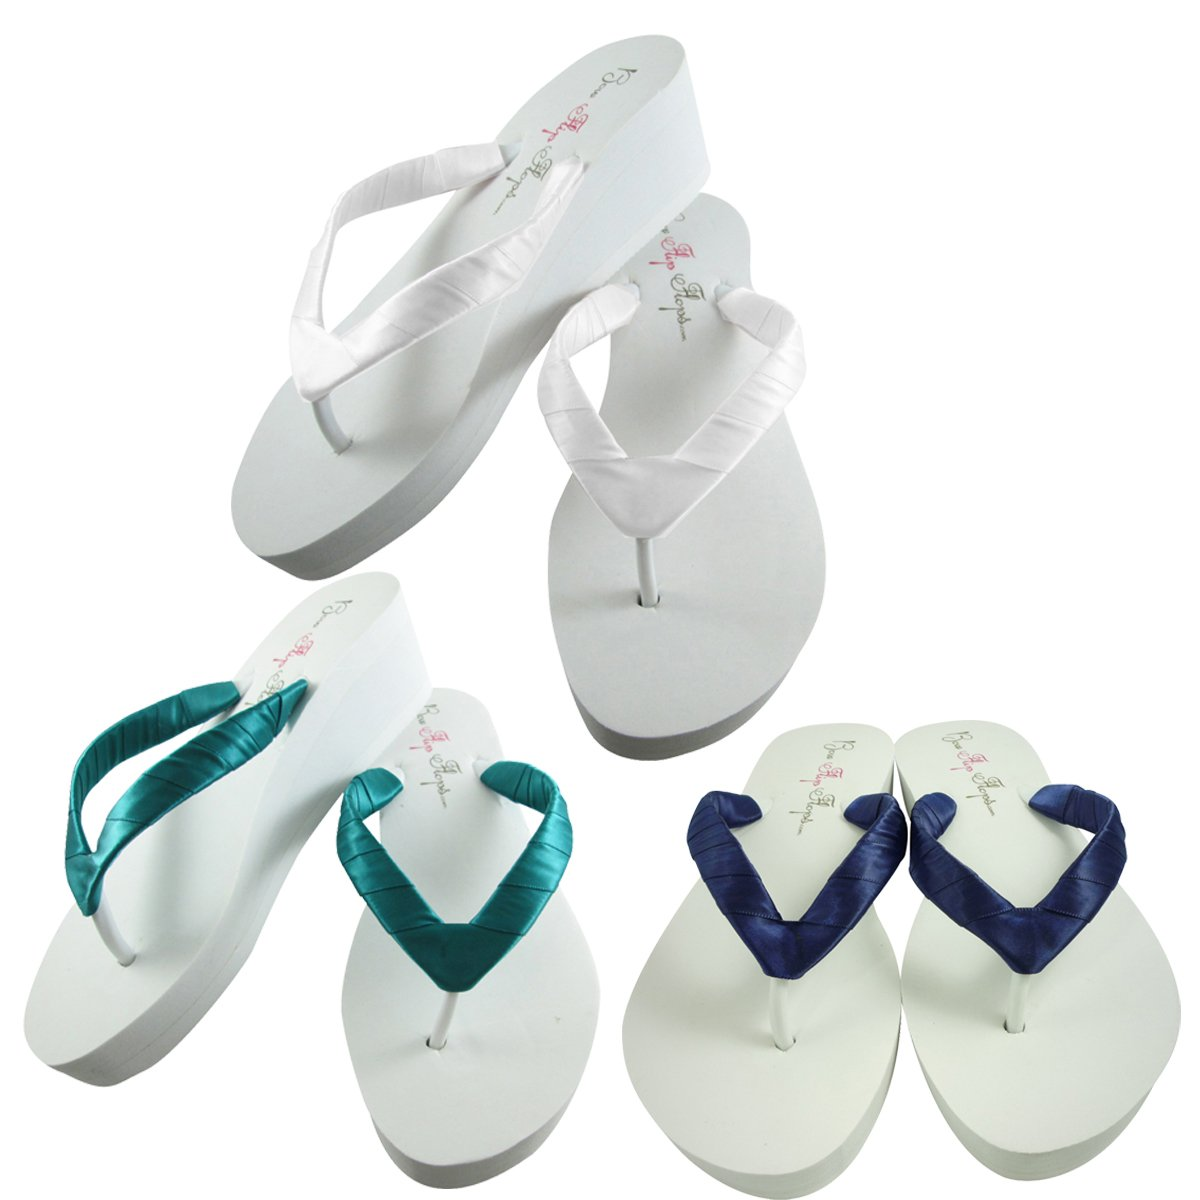 e148991a0bfd9f Pick Out Your Satin Ribbon Color - Wedge Heel Wedding Flip Flops